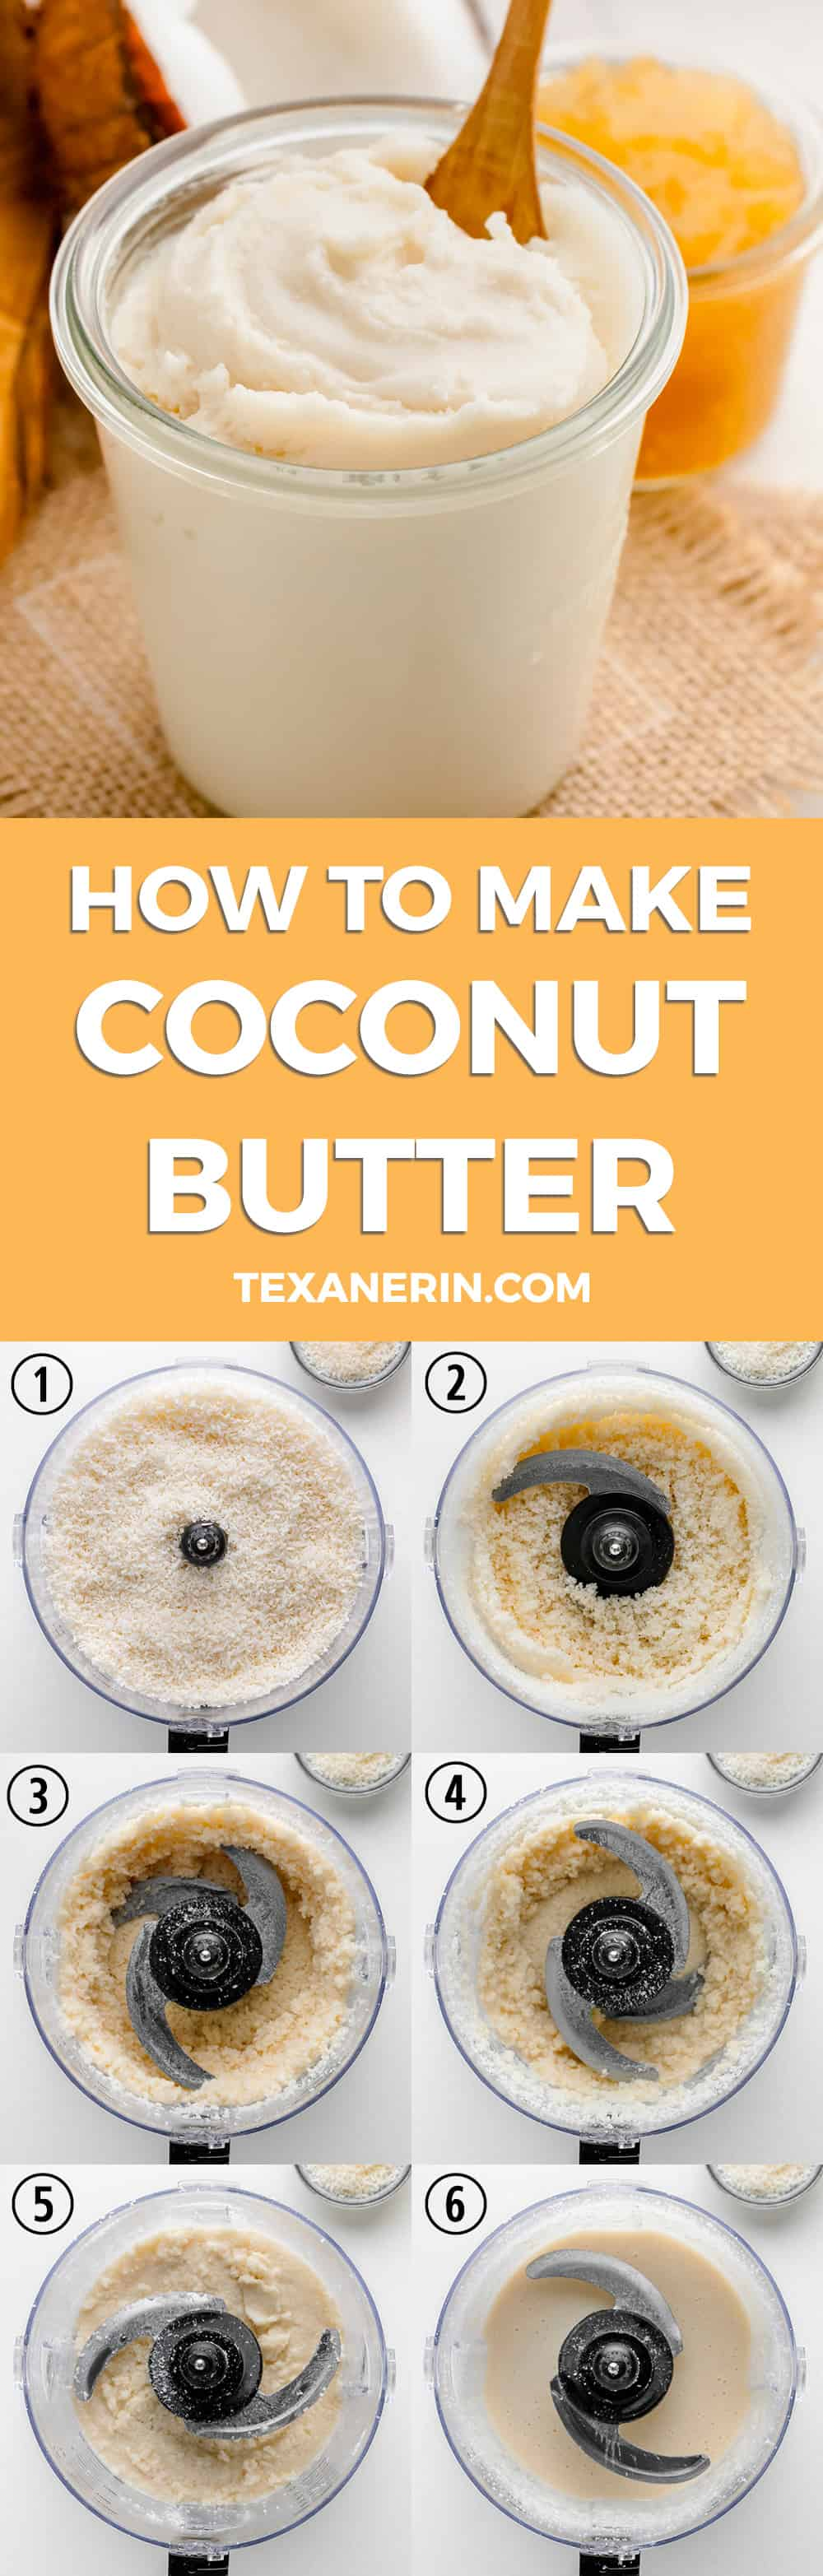 Homemade Coconut Butter – super easy and all you need is shredded coconut and a food processor or high-powered blender! Naturally paleo, vegan, and gluten-free.